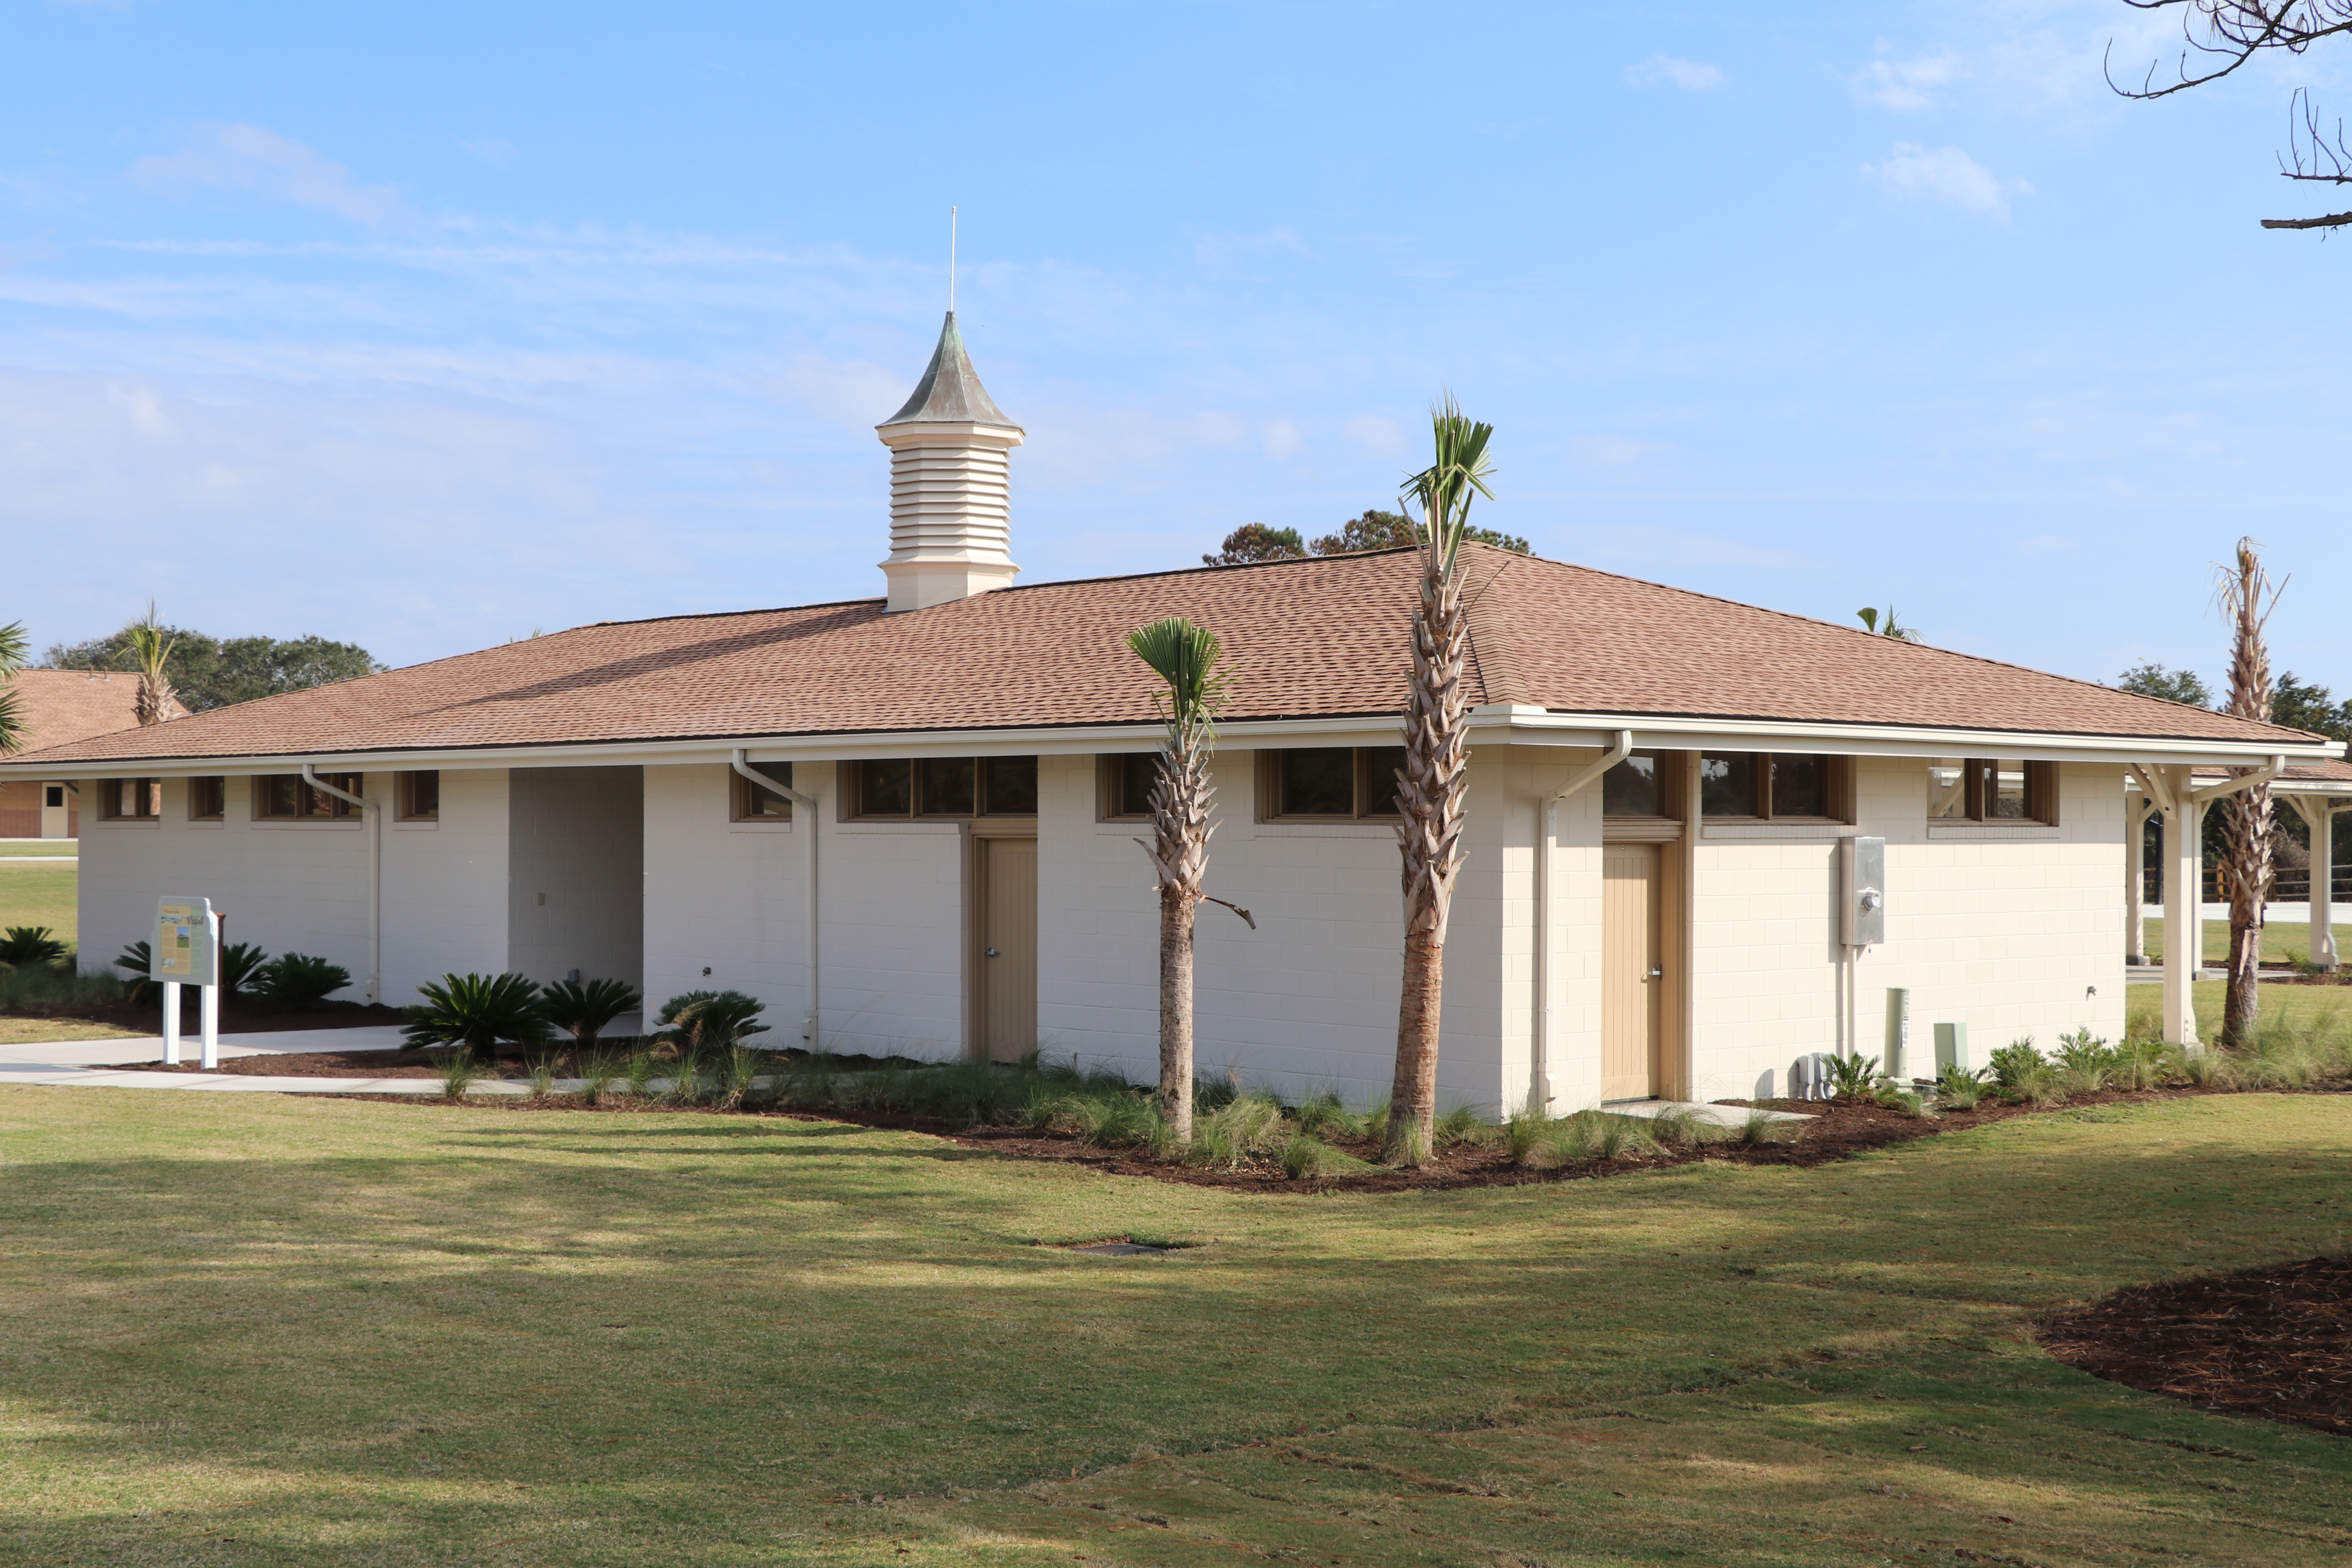 The Camp Jekyll Historic Pavilion is the only structure that was saved and restored from the original facility on the site. Built in 1955, it welcomed African Americans to the segregated beach as a place to congregate and picnic. It was later used as the 4-H center's canteen and gift shop.